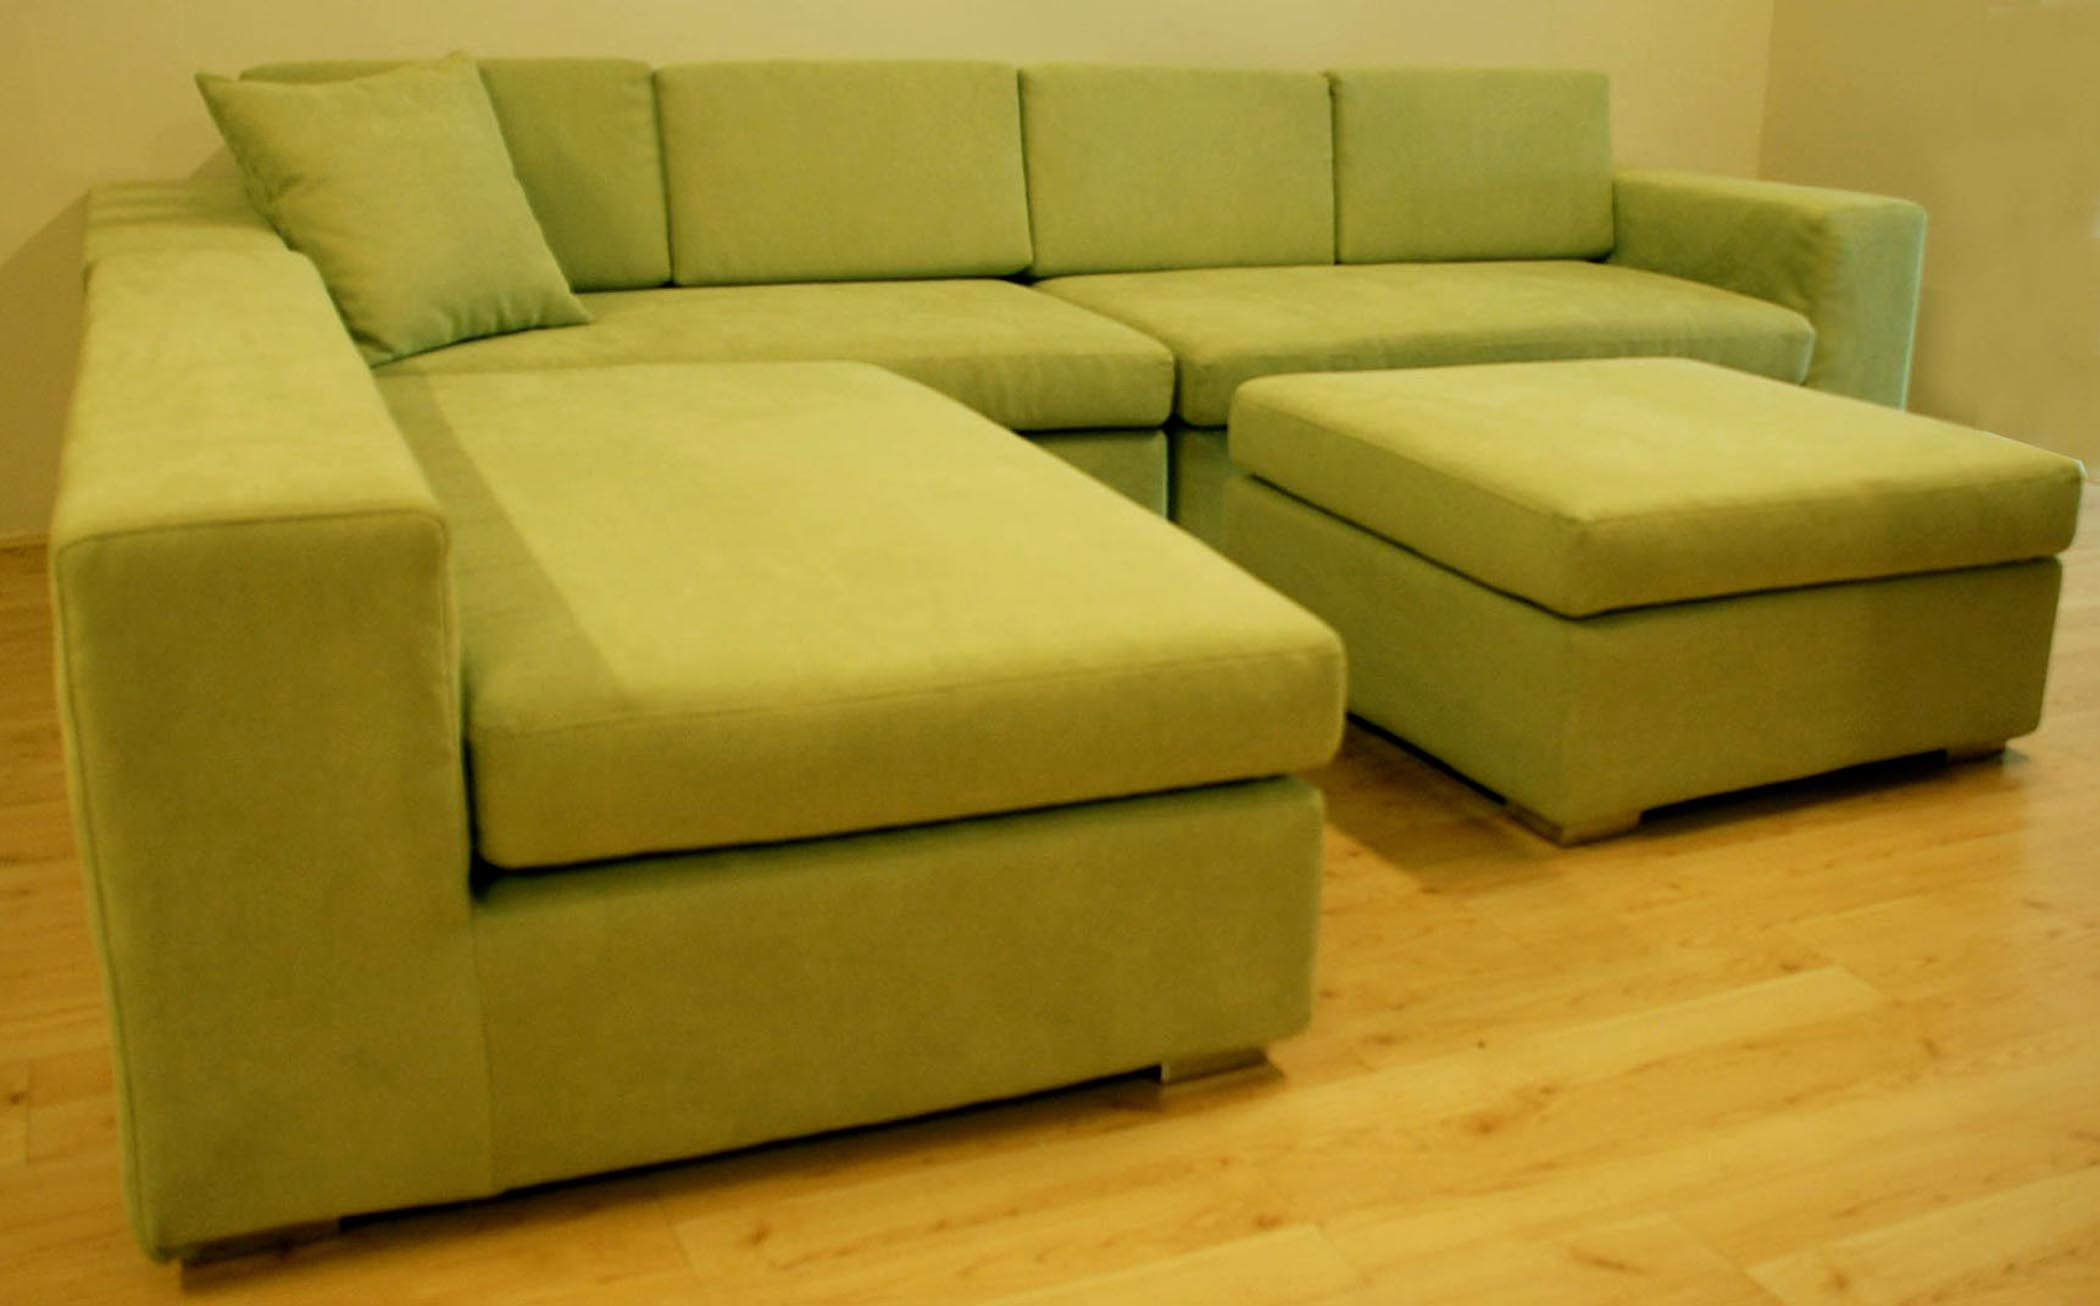 Charming L Shaped Green Leather Sofa With Track Arms And Padded Seat Cushion